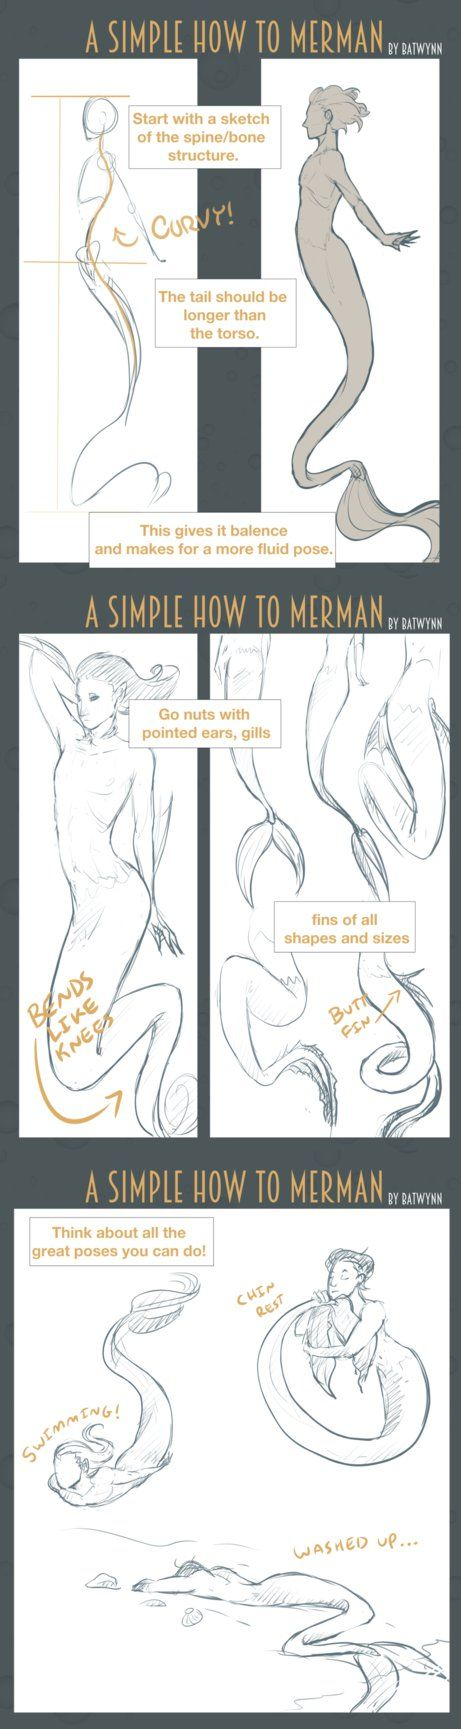 (A spine structure bending like a knee? Um, nope. But otherwise good for reference ^^)